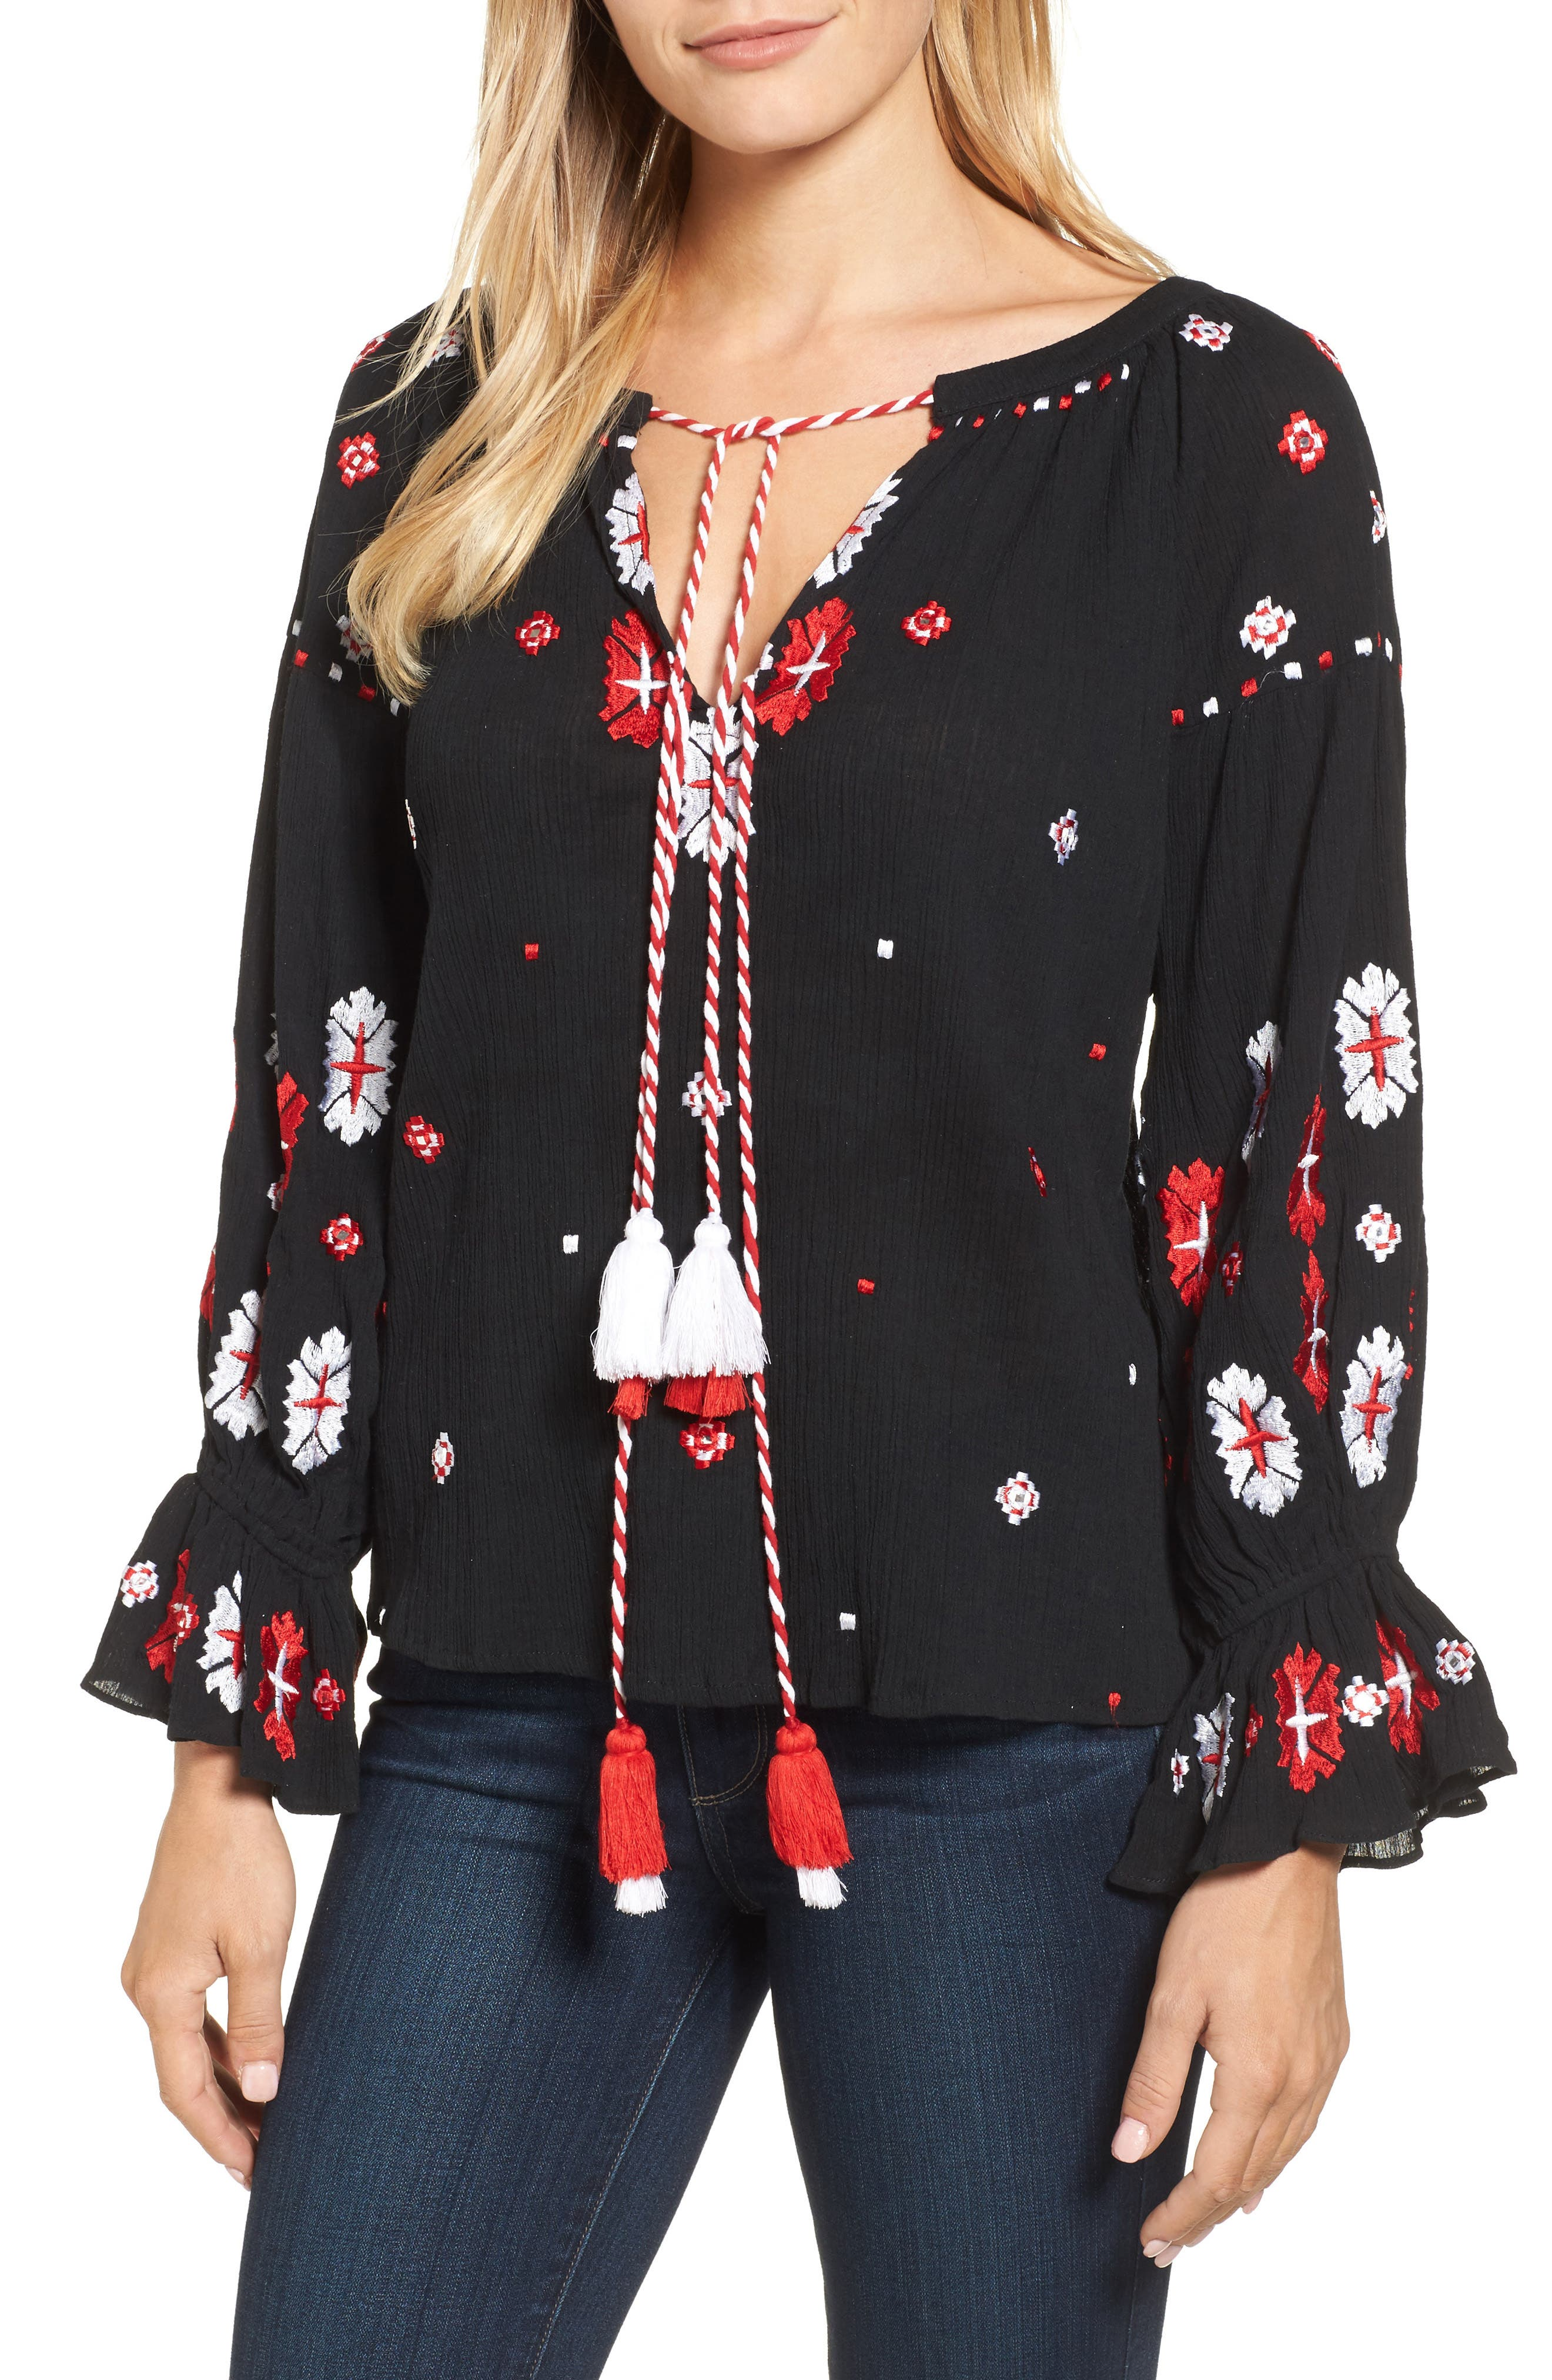 Myra Hand Embroidered Blouse,                             Main thumbnail 1, color,                             001